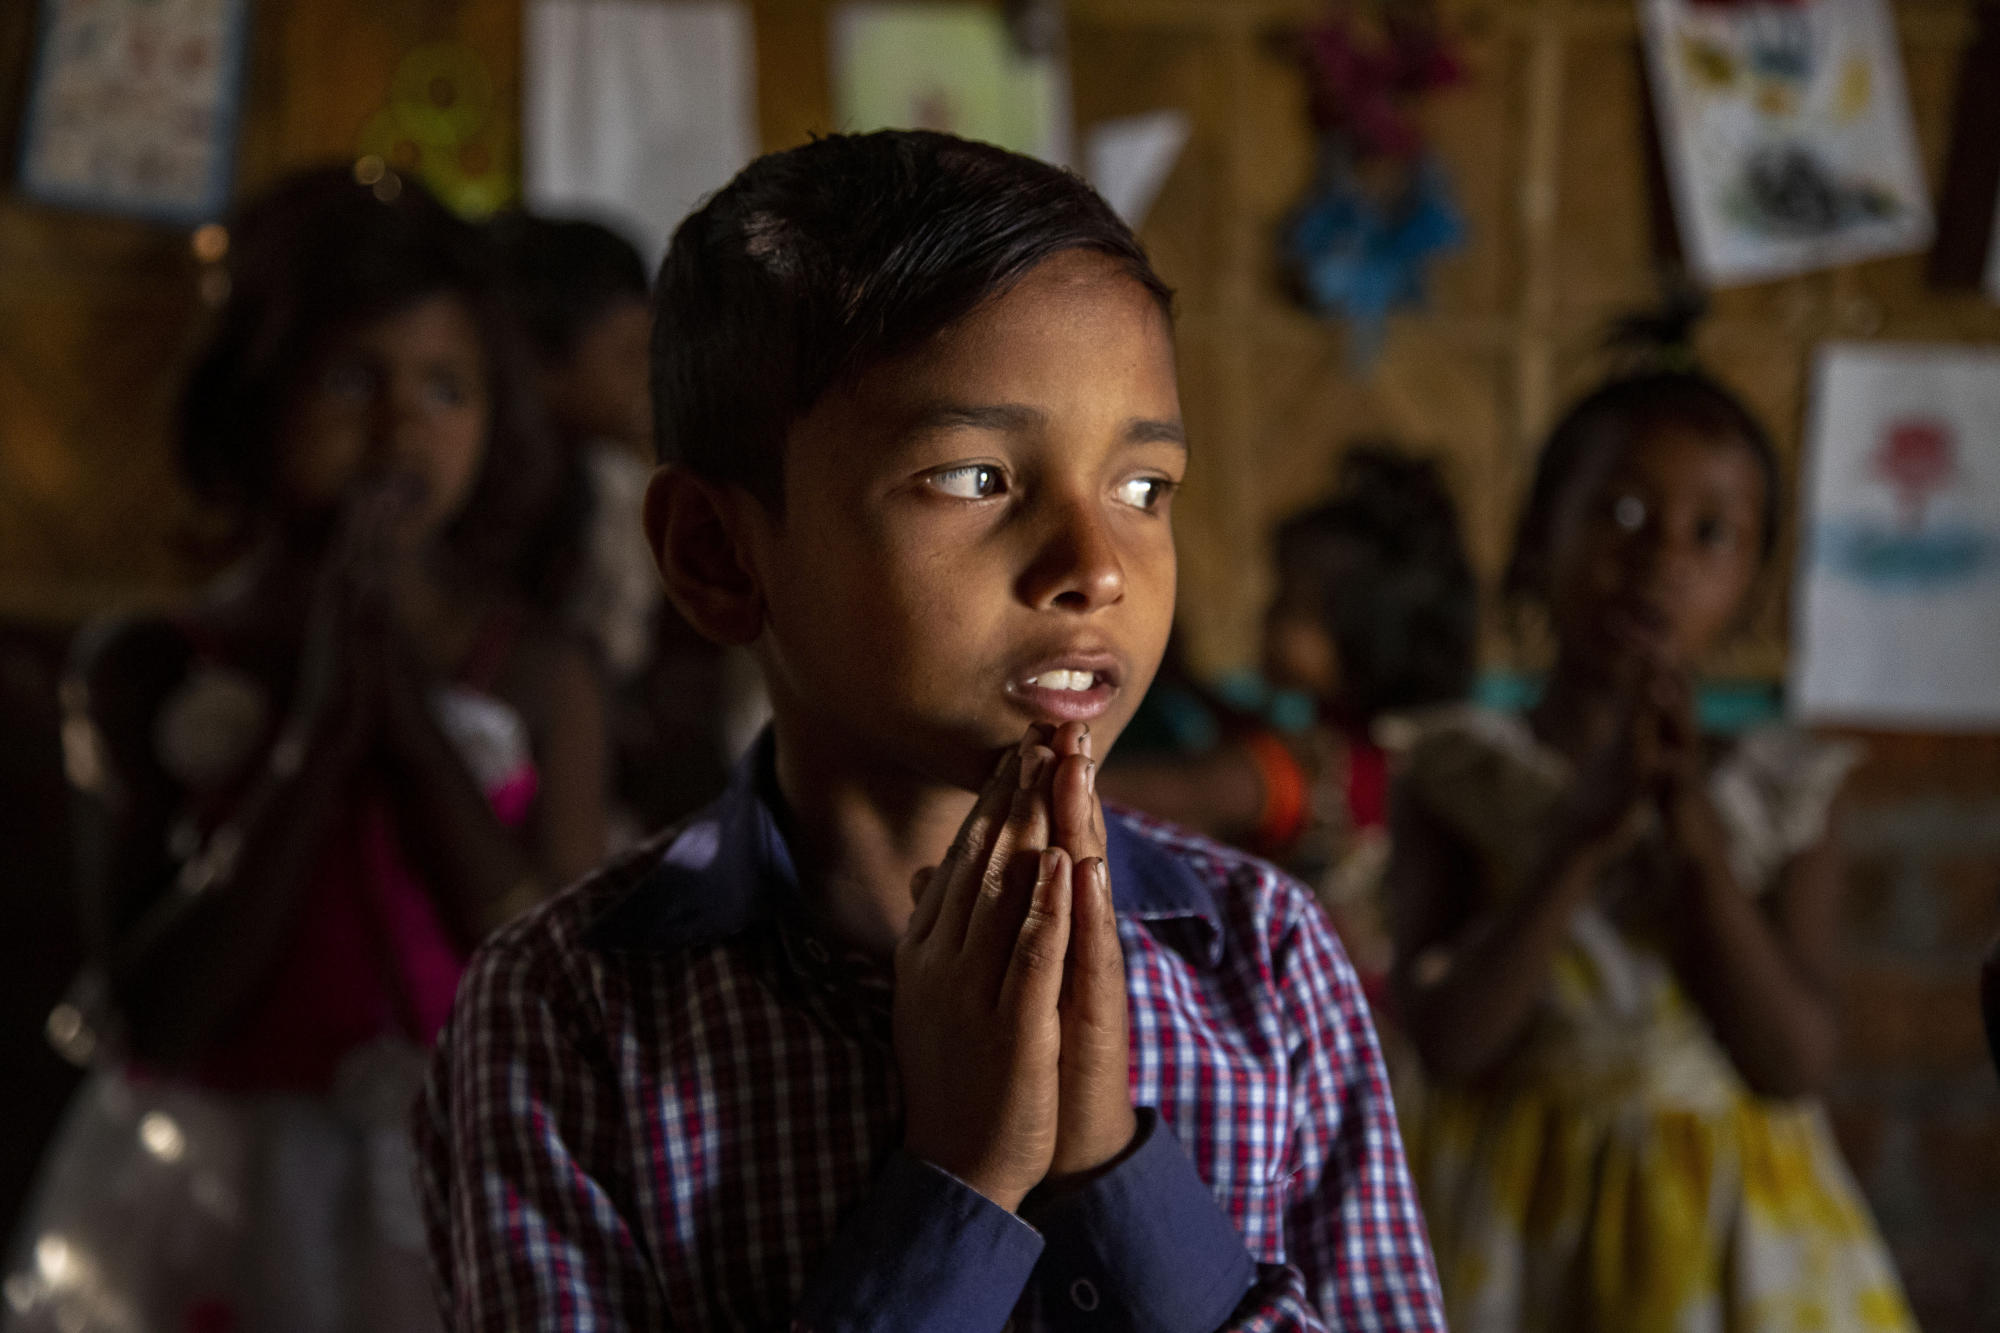 AP PHOTOS: A day in the life of an Indian child scavenger